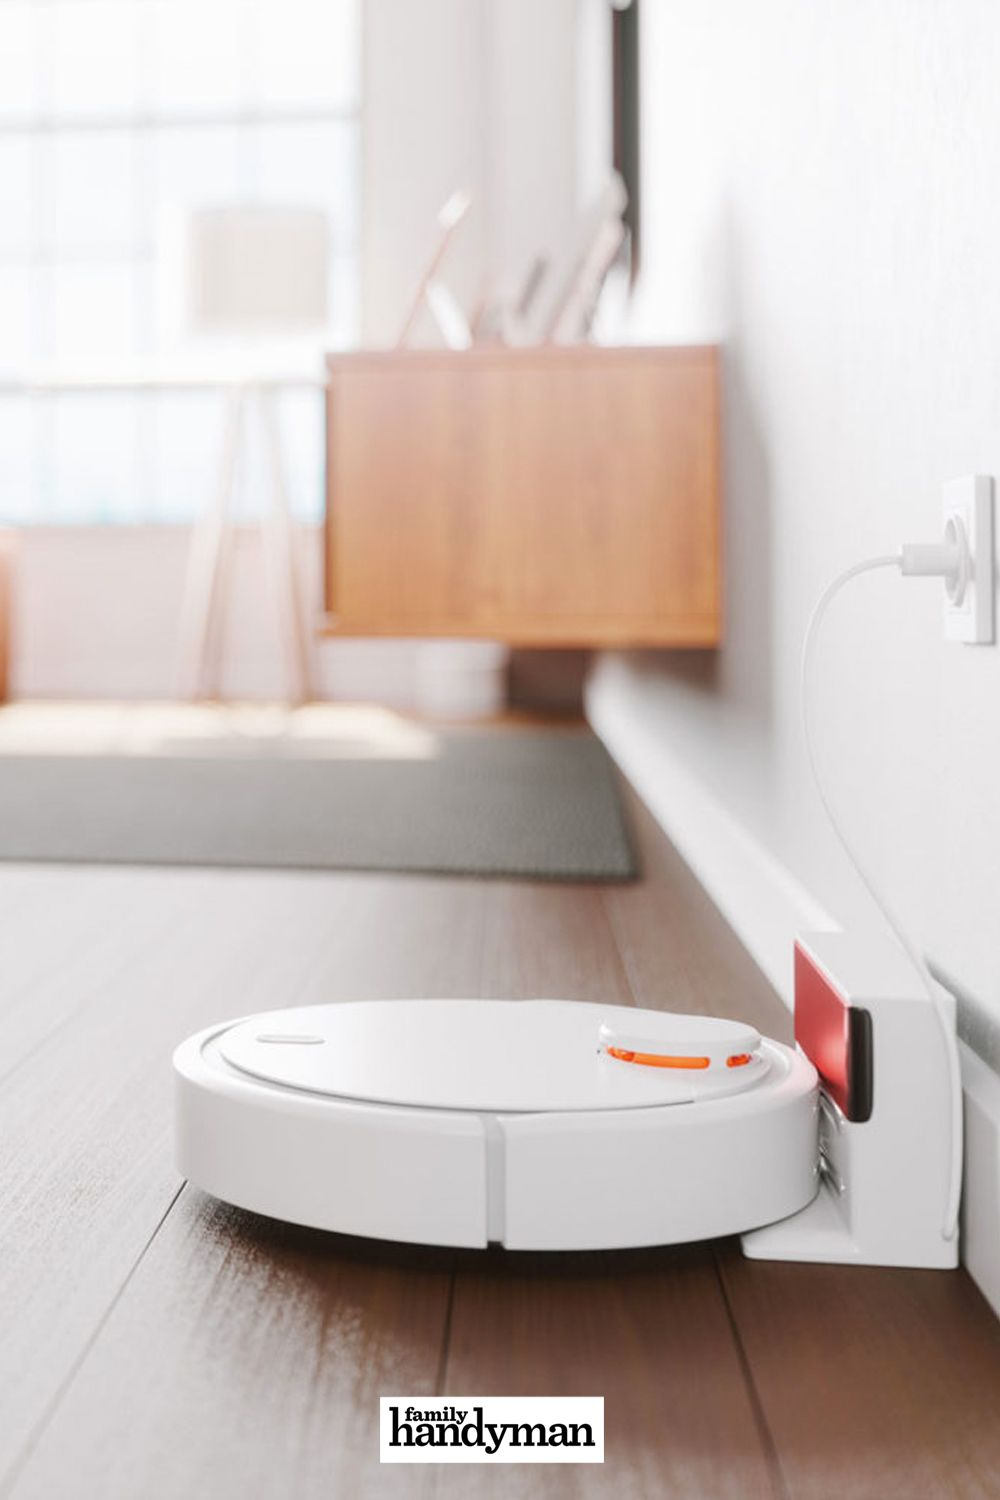 How To Choose The Right Robot Vacuum In 2020 Robot Vacuum Pet